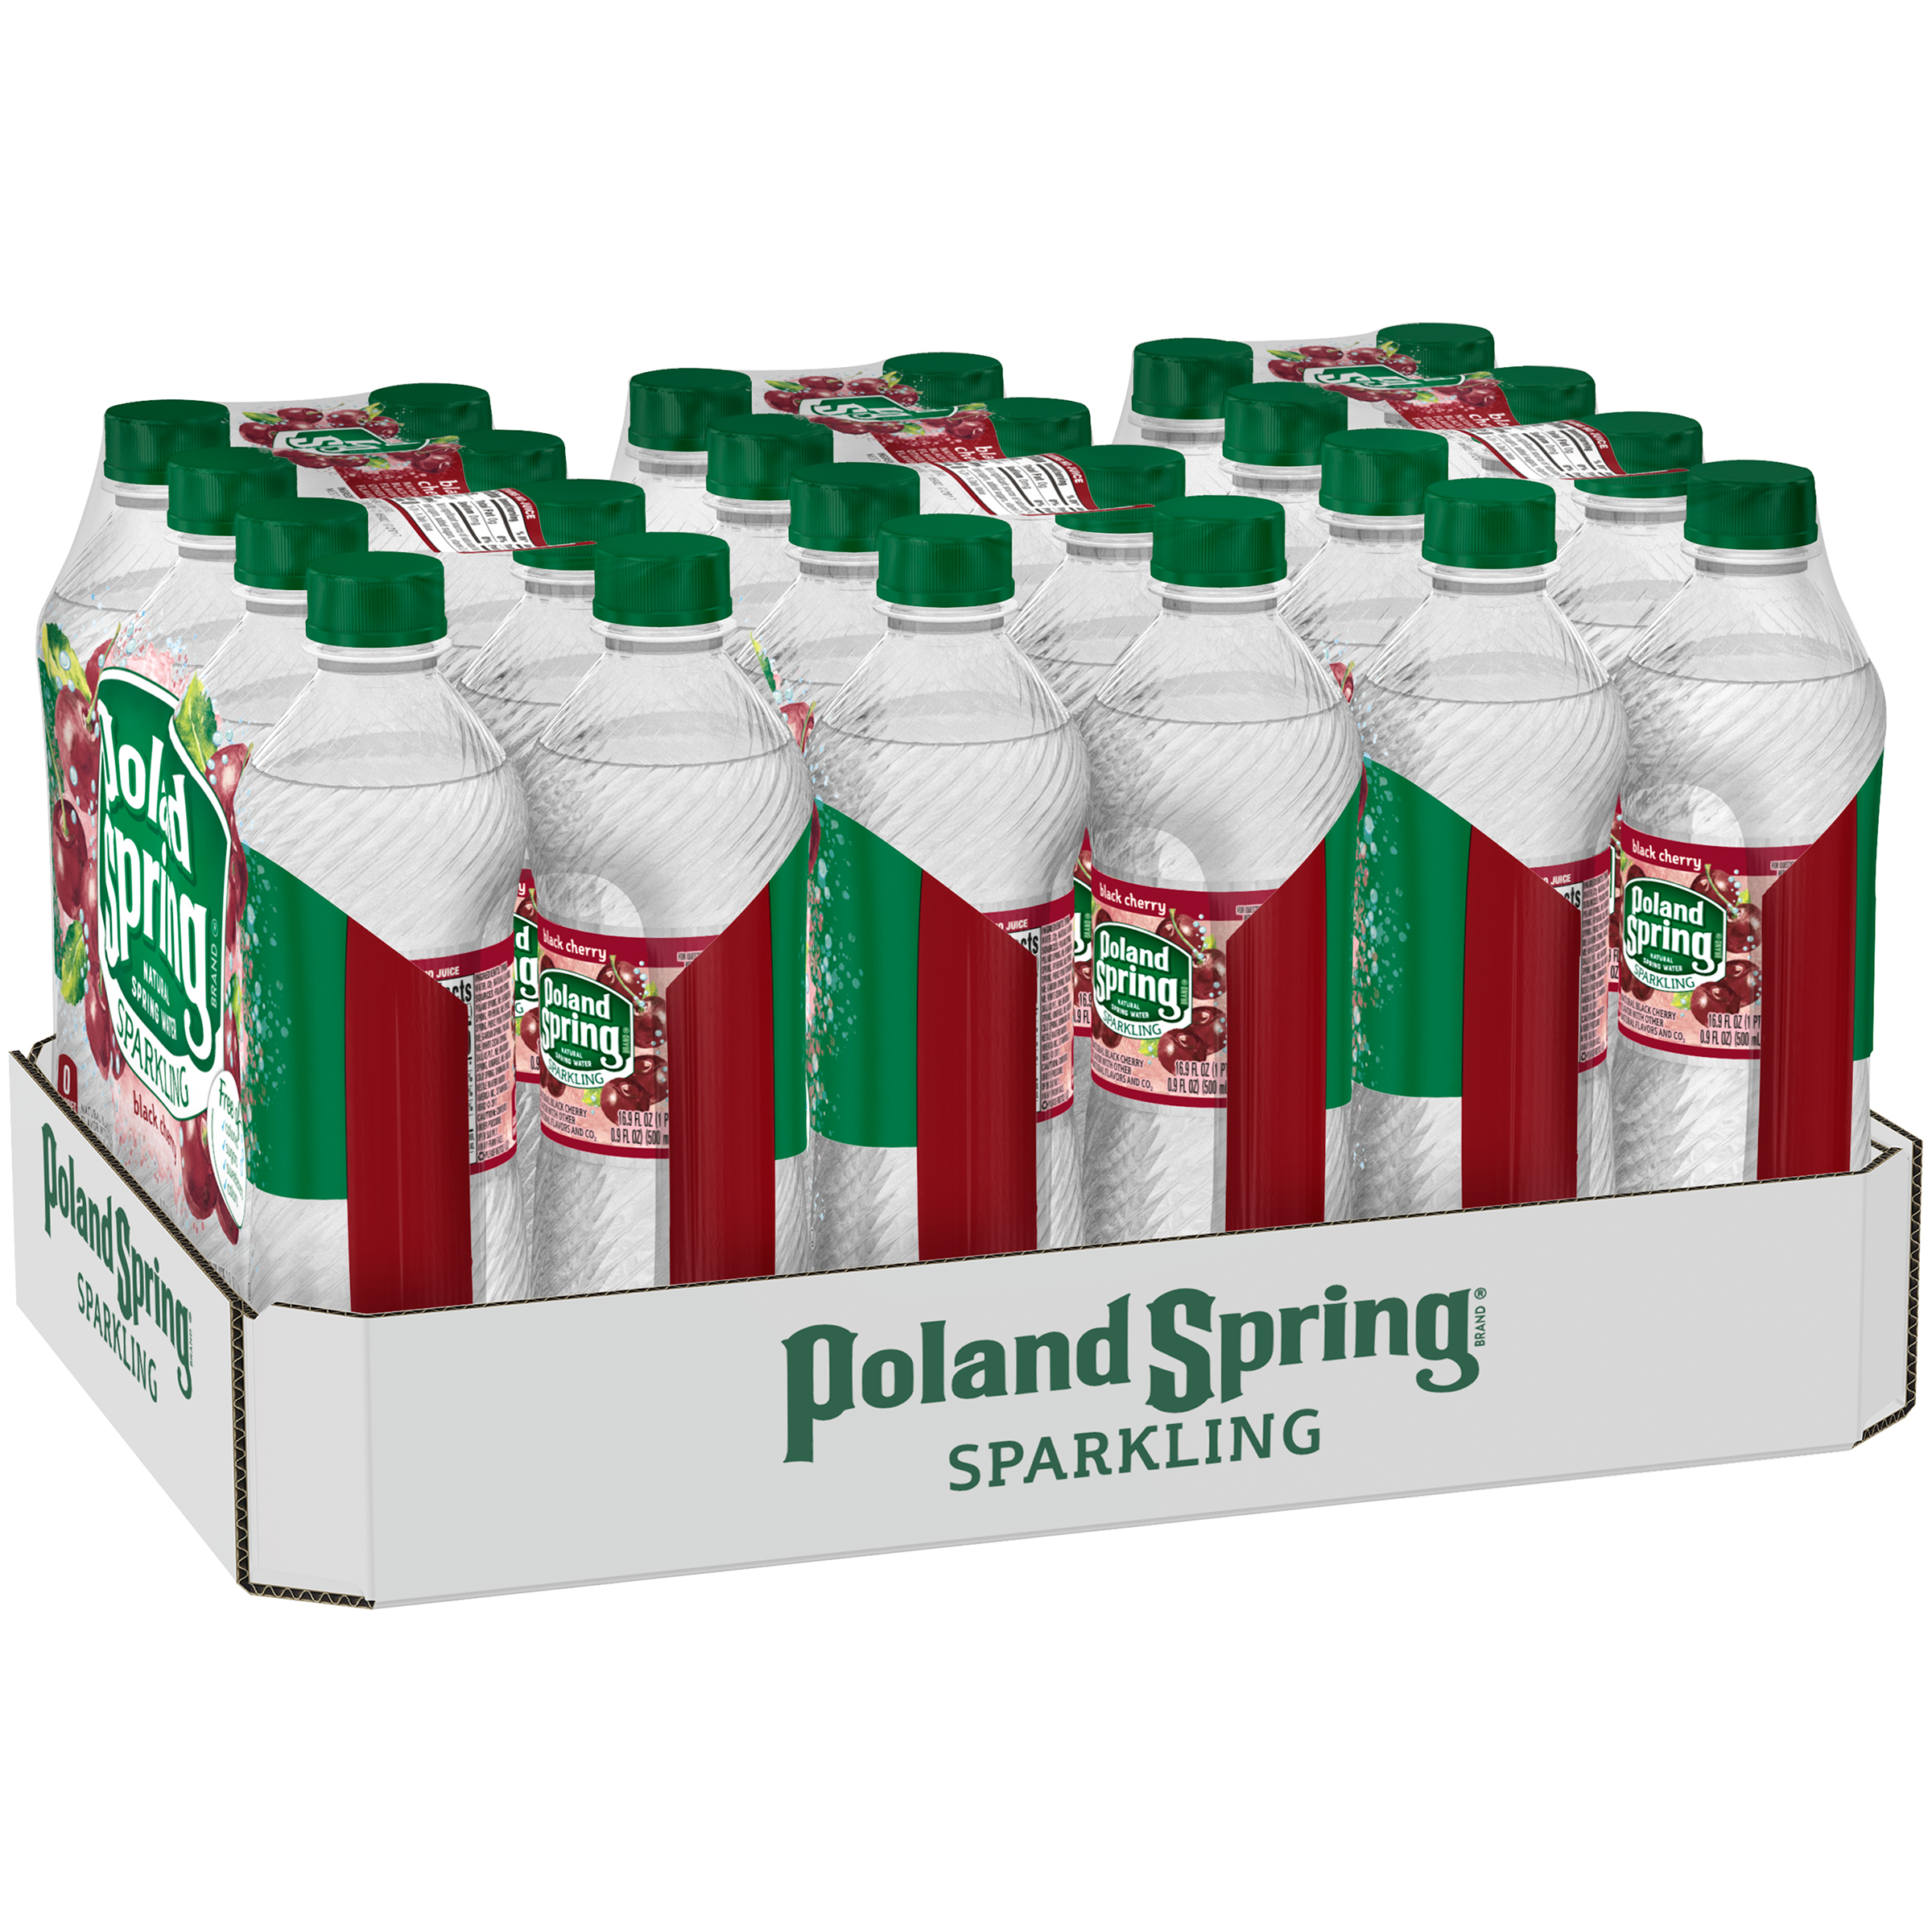 Poland Spring Sparkling Water, Black Cherry, 16.9 oz. Bottles (Pack of 24)